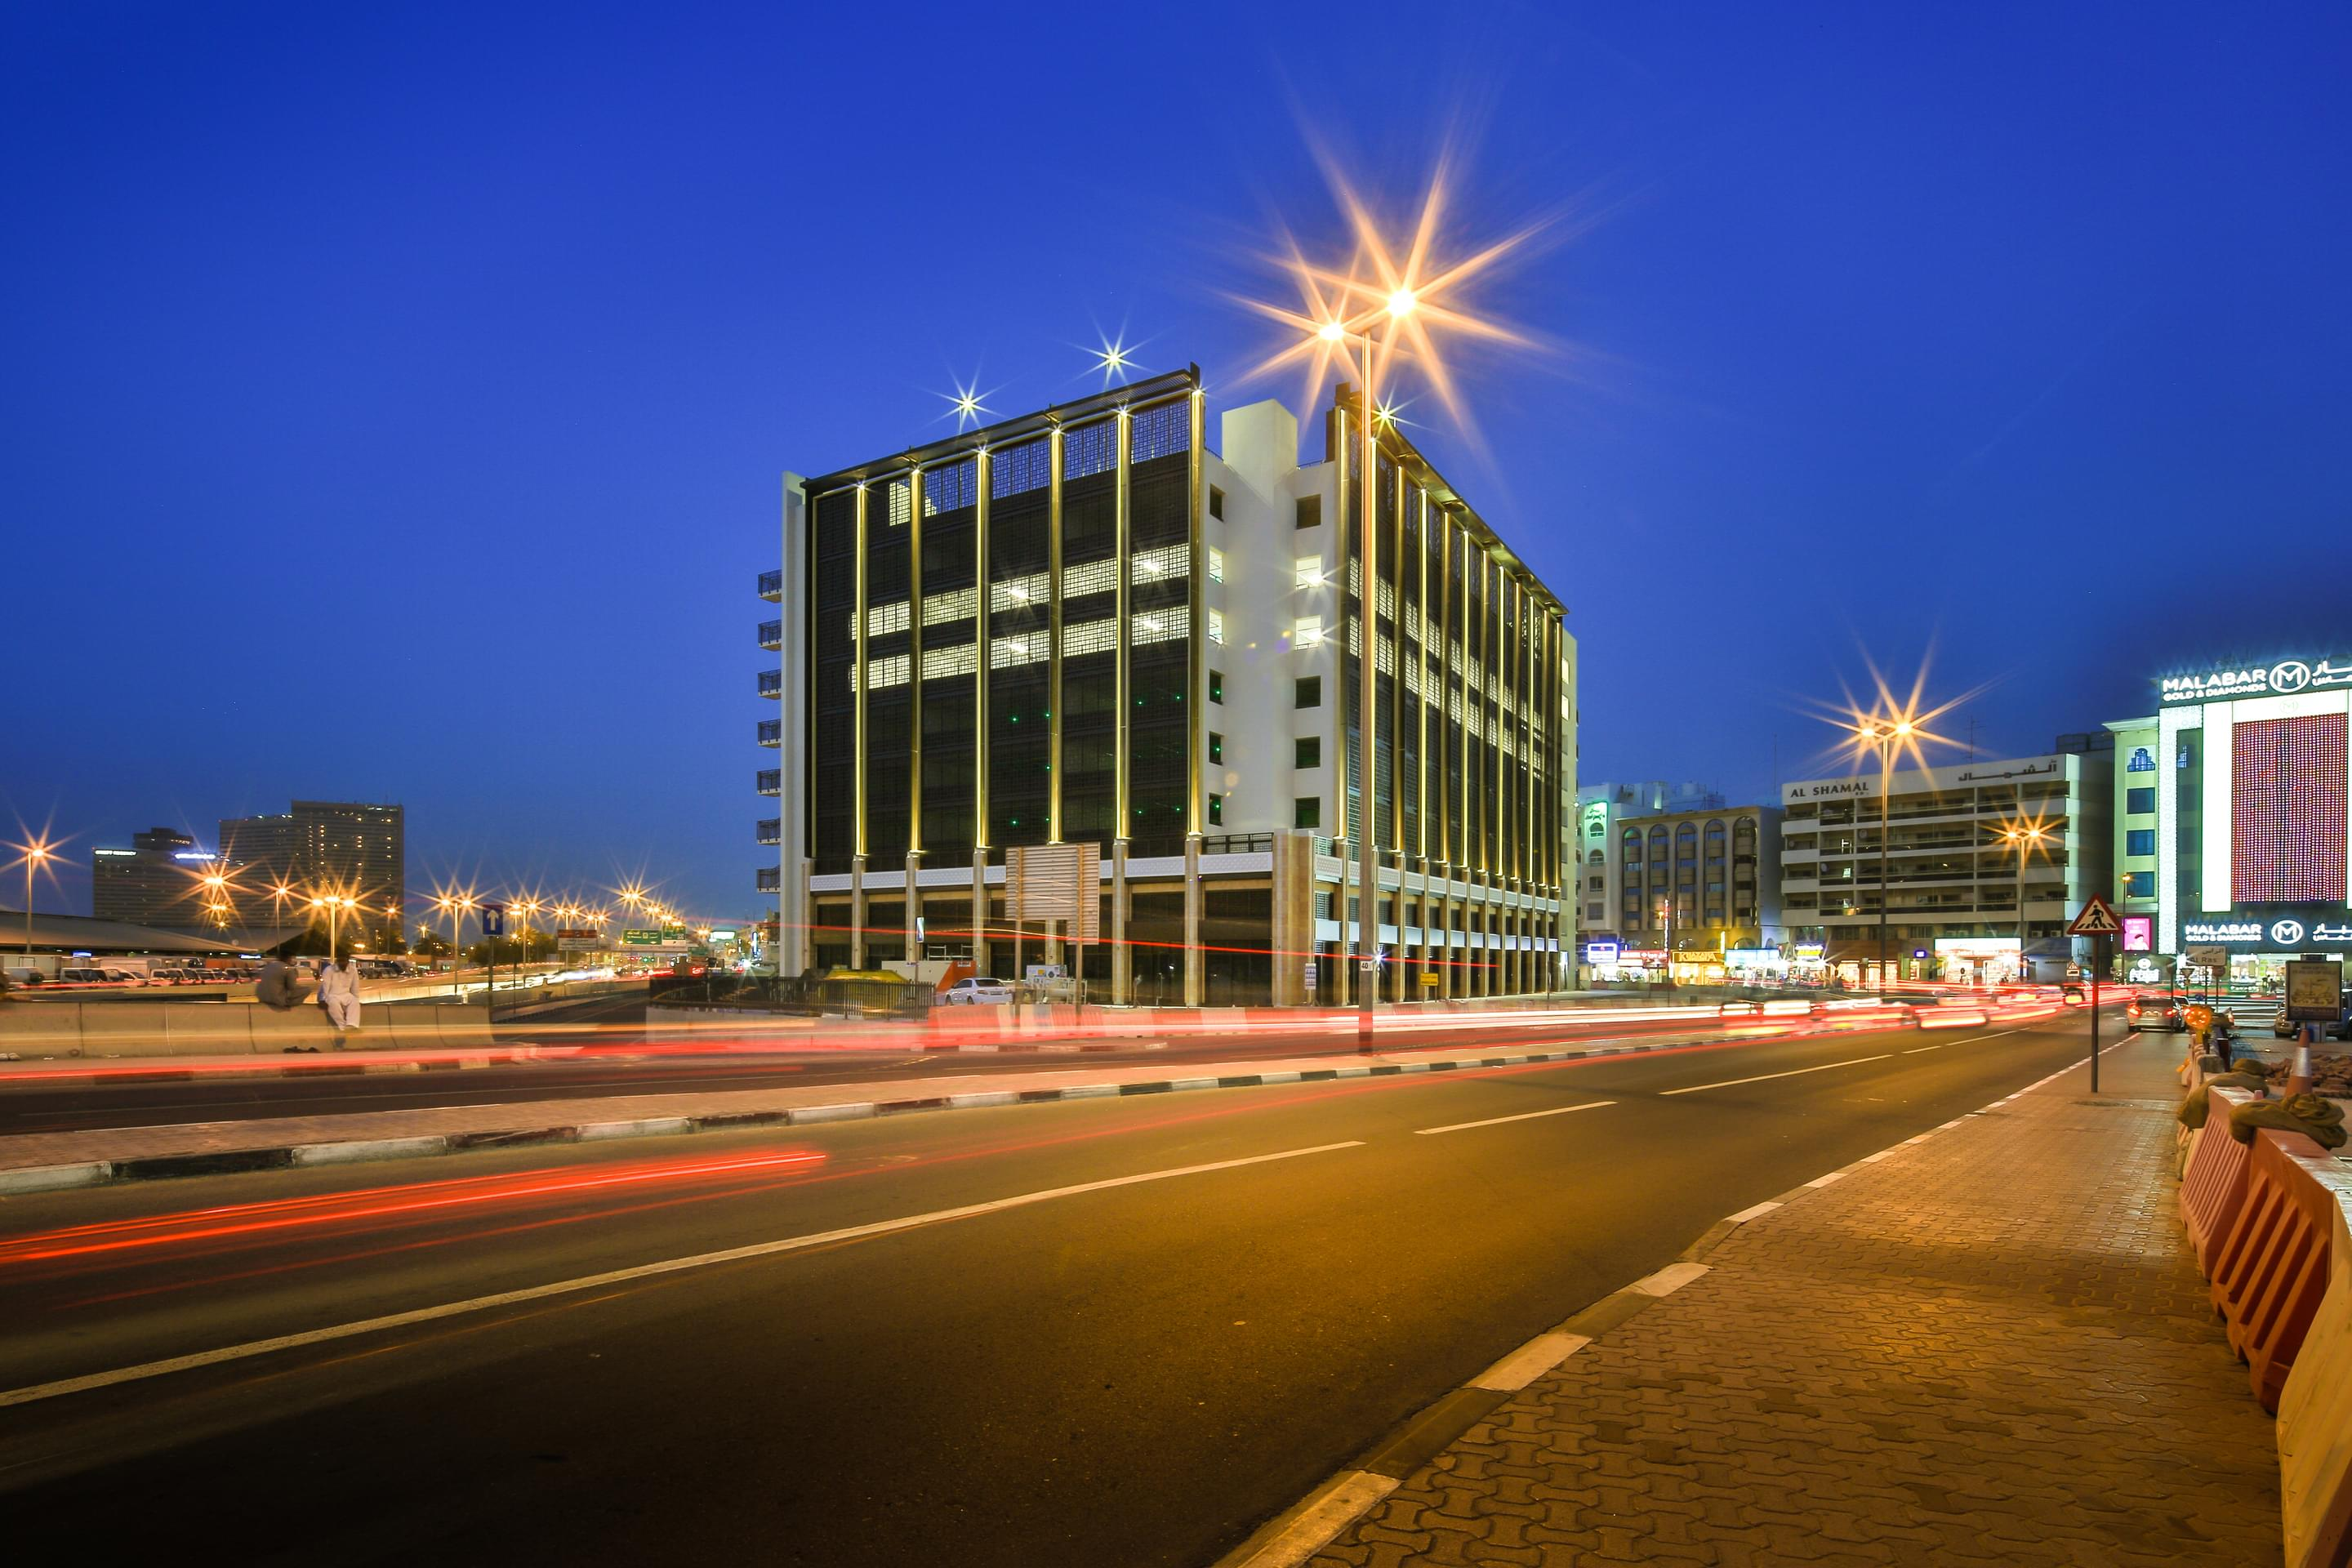 Deira Waterfront Parking Structure